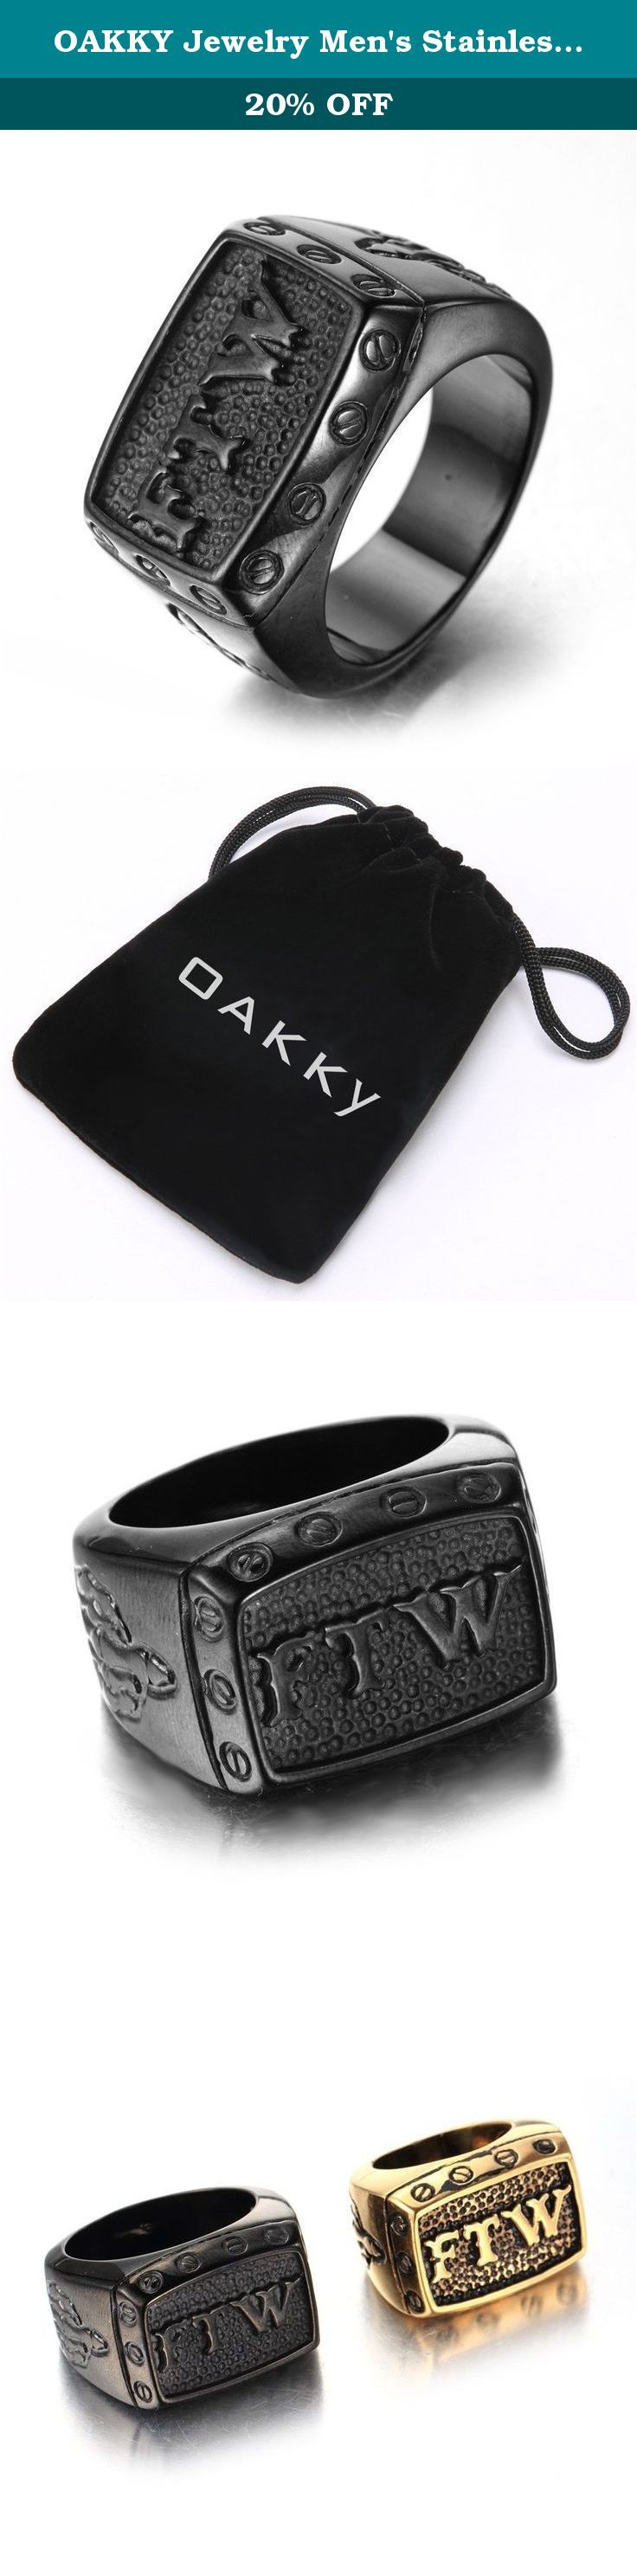 OAKKY Jewelry Men's Stainless Steel Punk Biker Rings with Letters FTW, Vintage Black Size 12. OAKKY Culture: We are a professional jewelry store. Variety of jewelry for your choice here. 316l stainless steel metal material is the most popular jewelry nowadays. Hypoallergenic is an important feature. High quality of goods earns many repeat orders. Why not try now ? Item Details: Design: English letters High-quality titanium steel,resistant to acid,alkali resistant. Manual polishing,smooth...